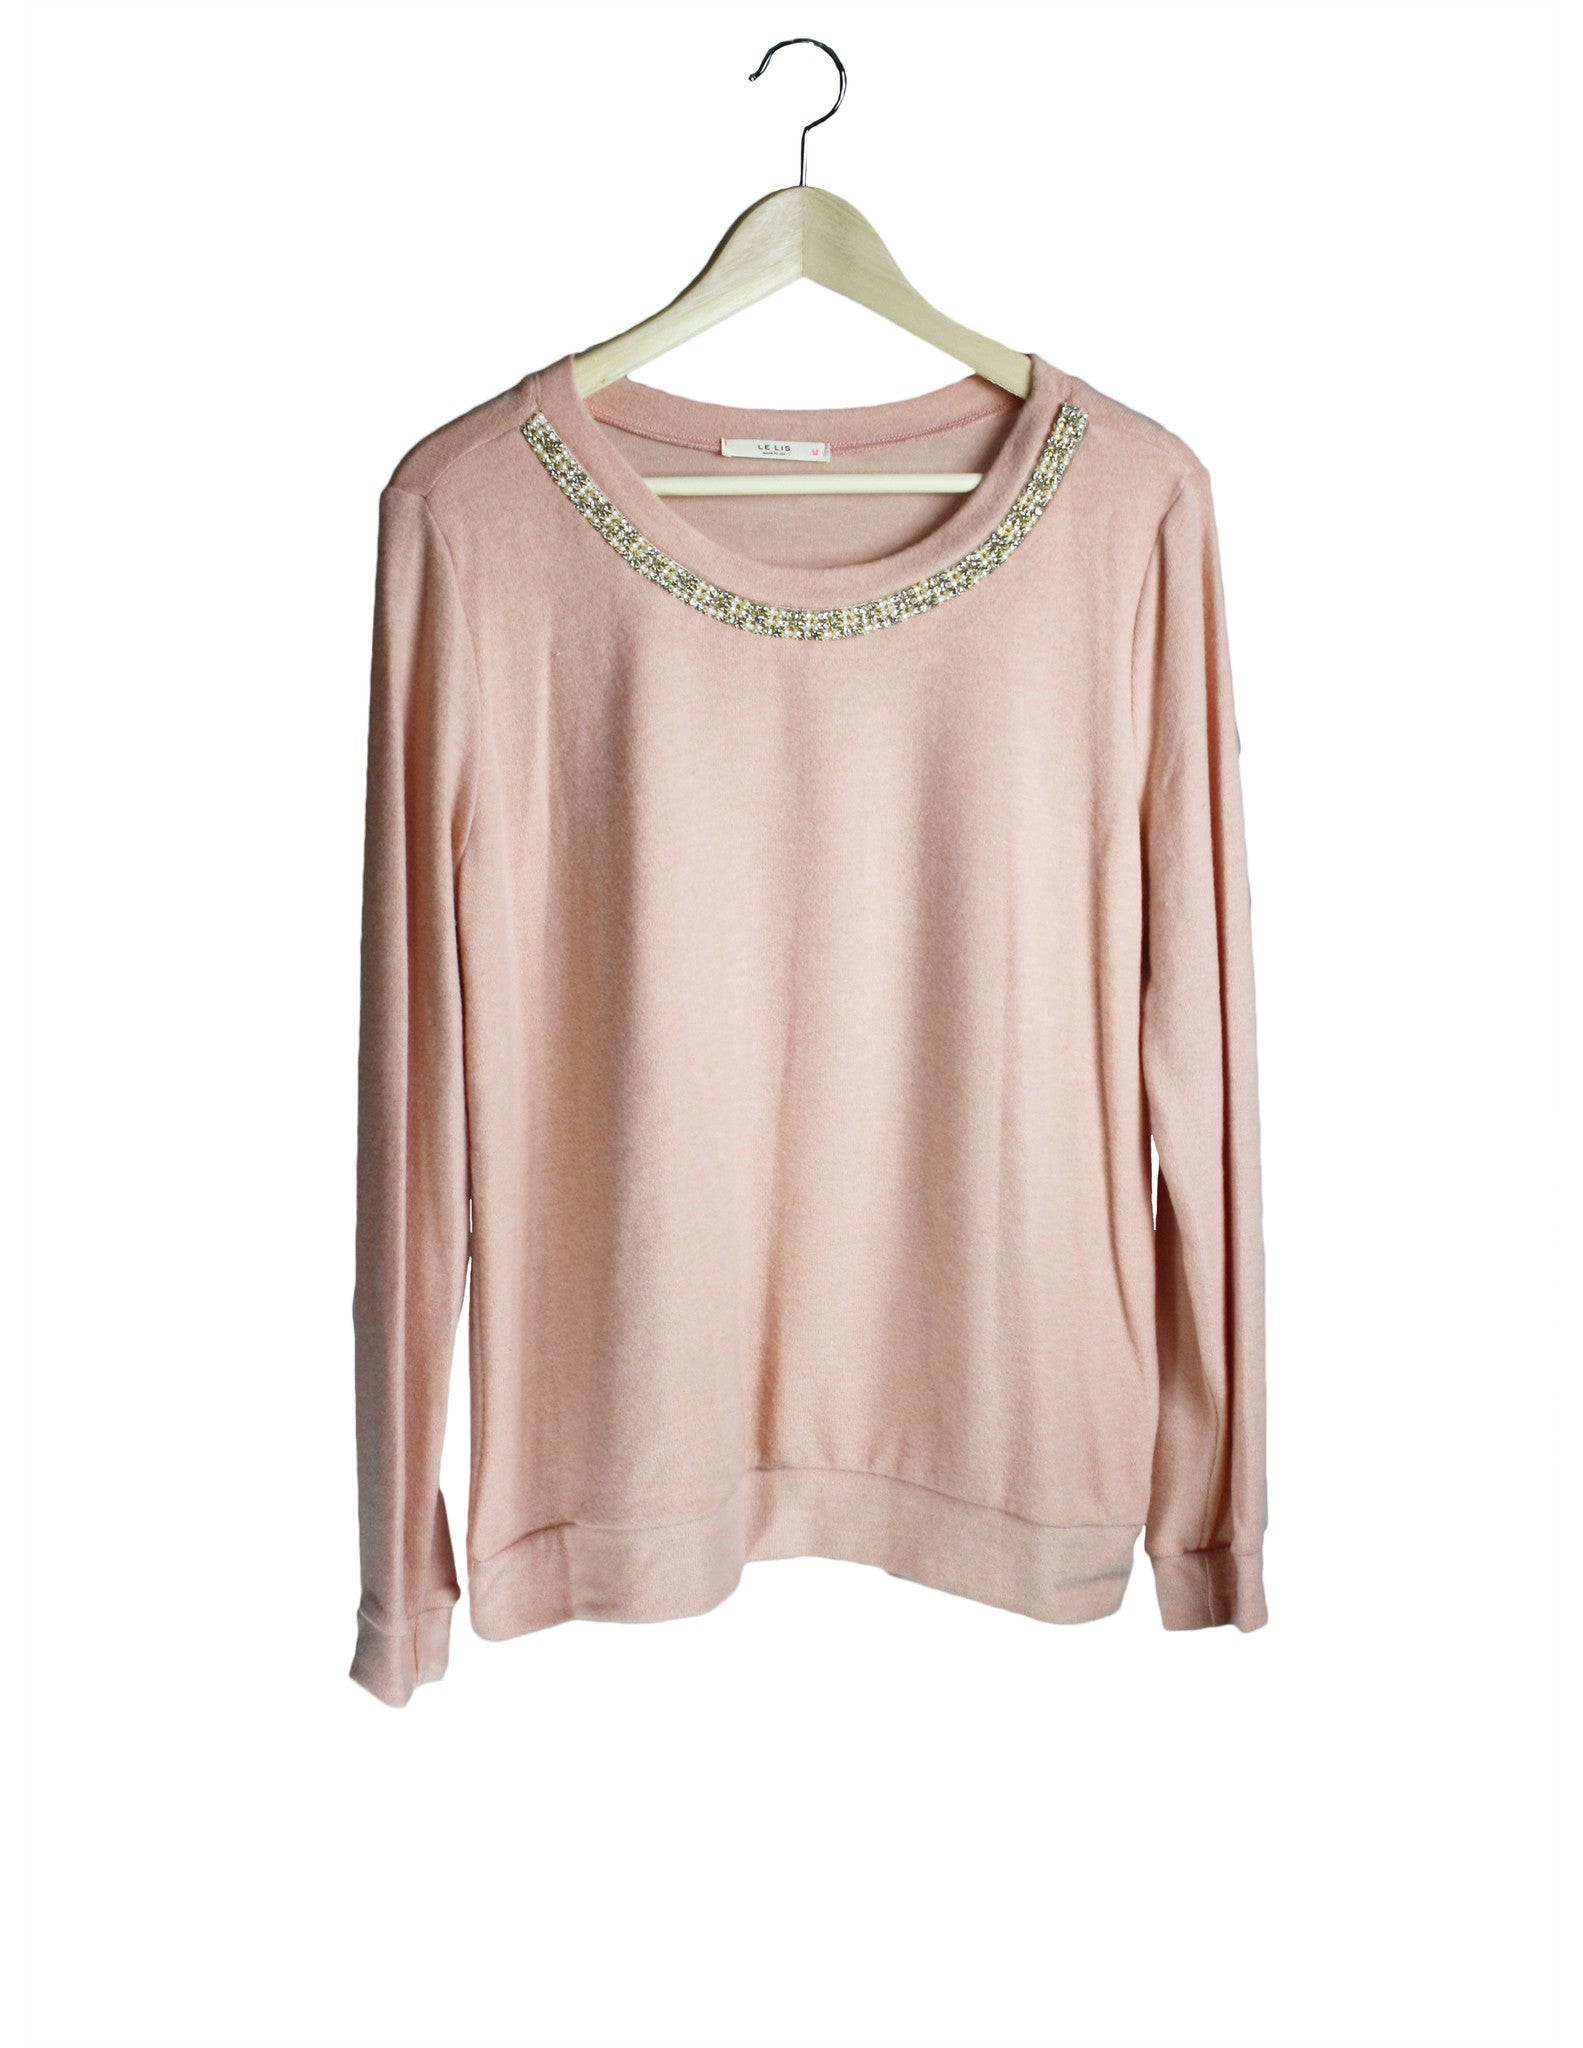 Pink Glitzy Sweater / Ethical Fashion